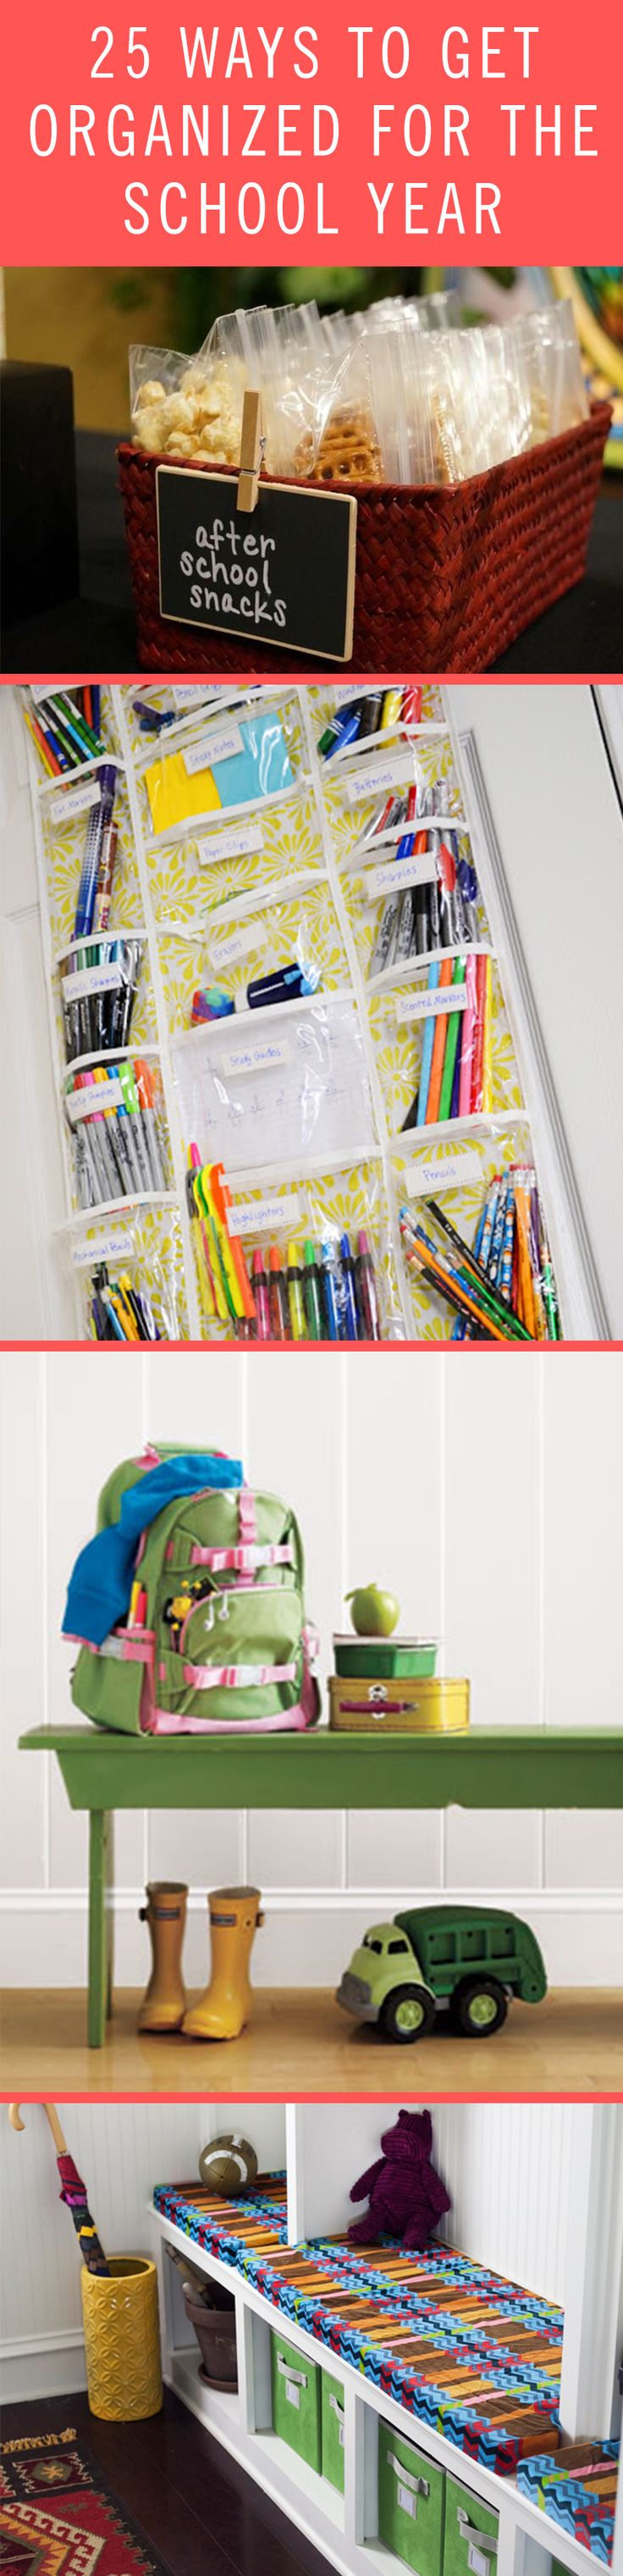 Wondering how to stay organized before sending your kids off to school? From separating after school snacks to setting aside school supplies, your little students will be ready to take on the year.